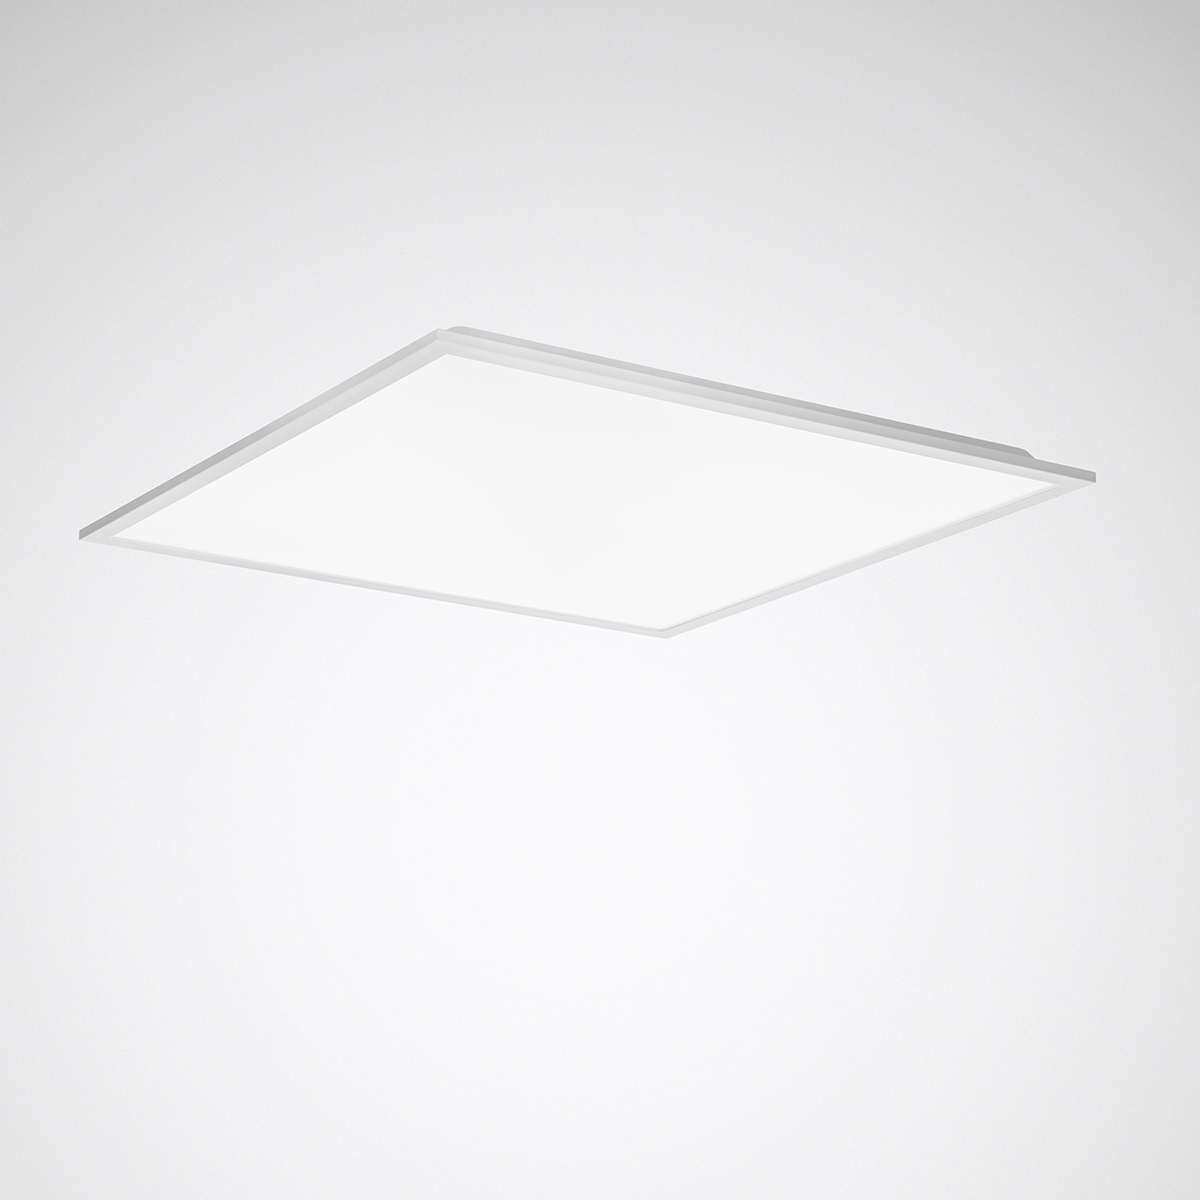 Trilux twenty3 LED recessed luminaire panel 2330 G3 M84 PW19 3600-830 ETDD